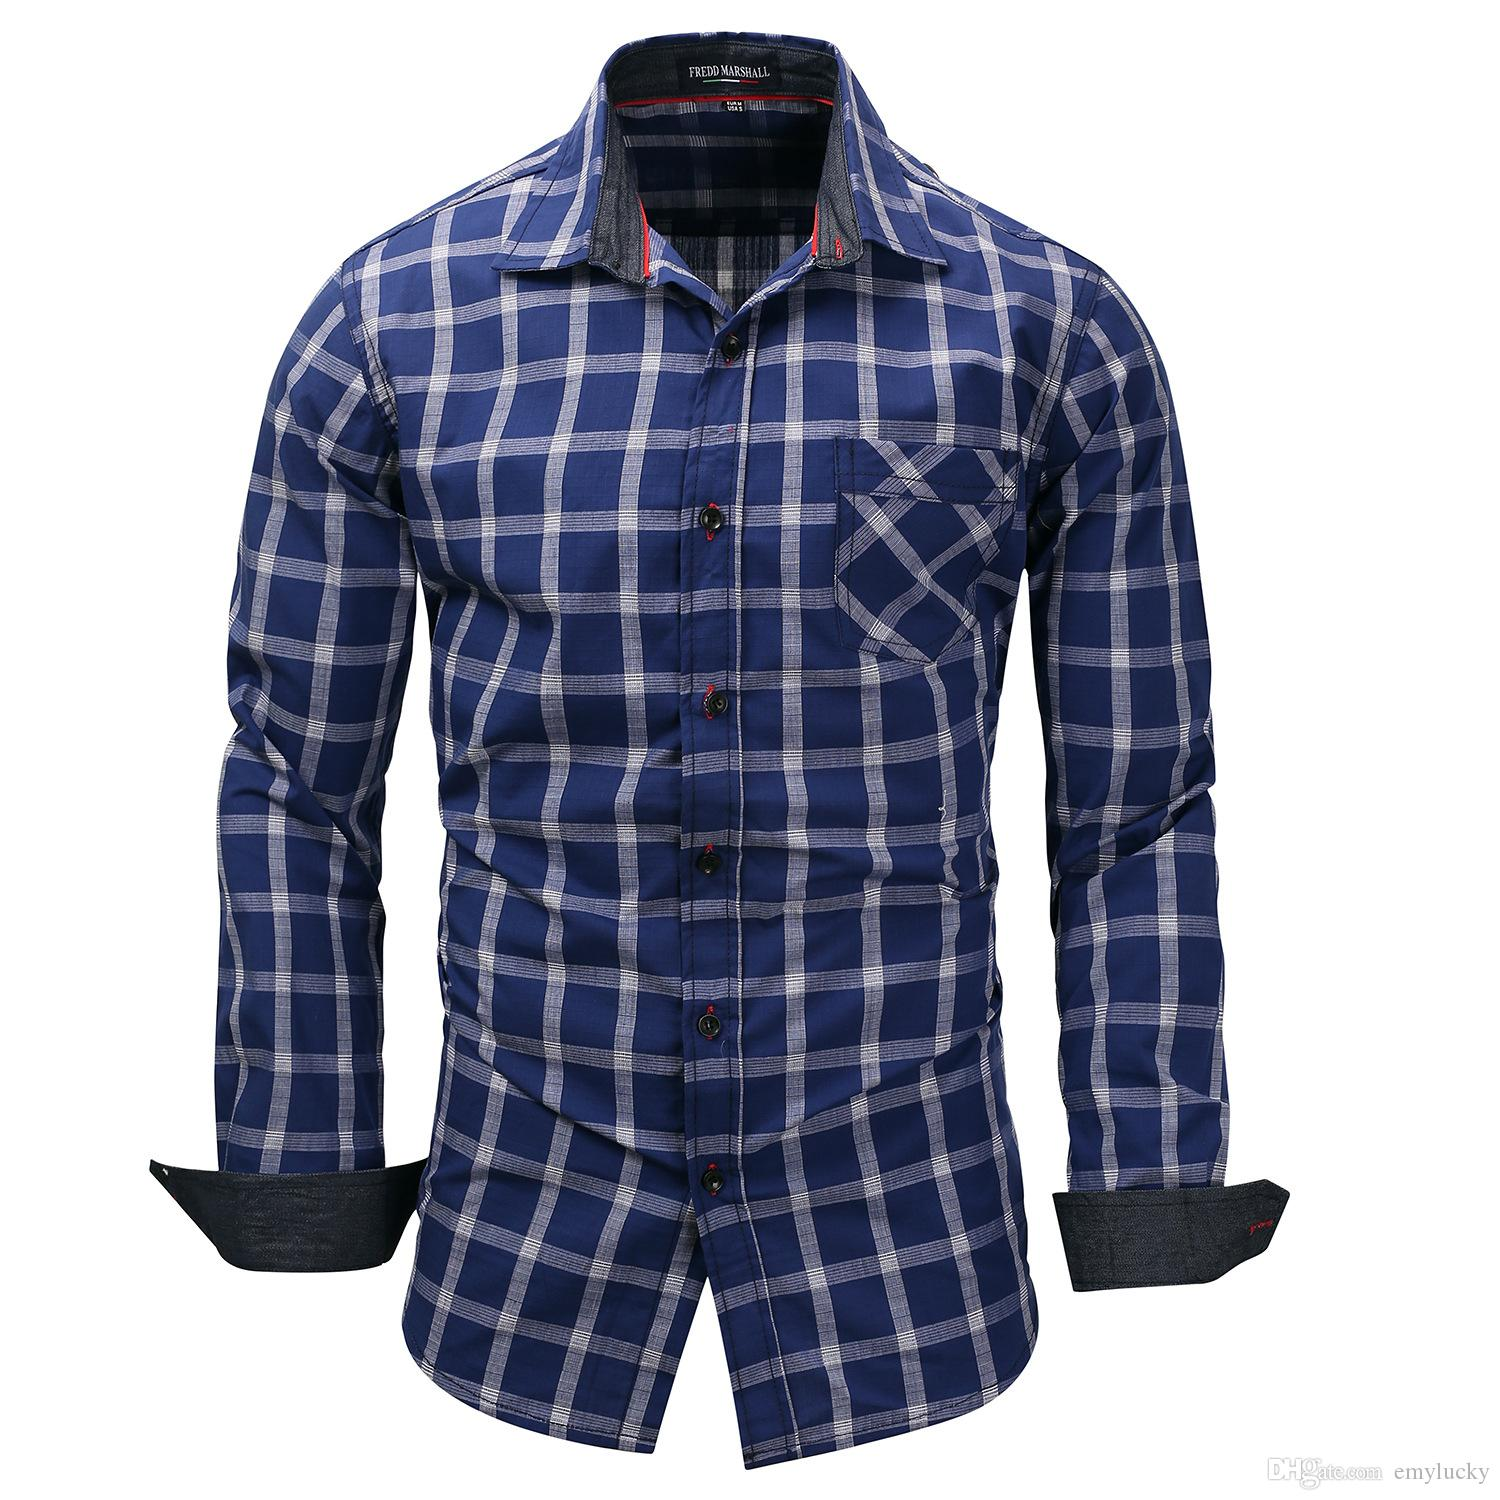 4e2da1a9 2019 Wholesale Men Casual Plaid Pocket Shirts Men'S Polo Solid Luxury  Stylish Long Sleeved Casual Designer Dress Polka Shirt Muscle Fit Shirts  From Emylucky ...